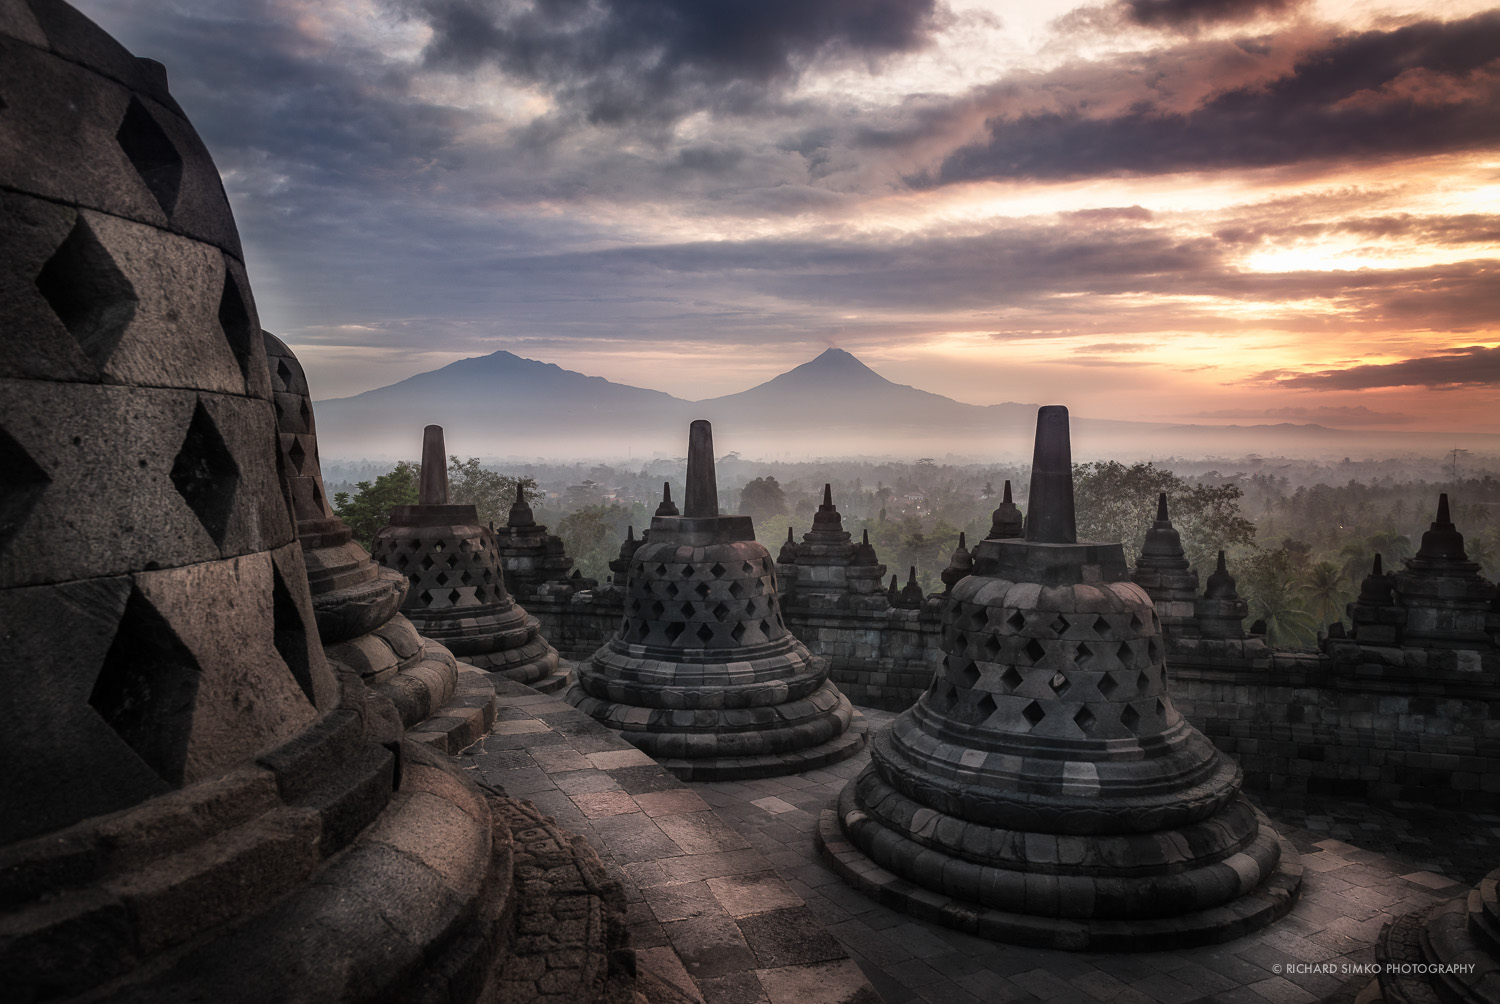 Sunrise at Borobudur temple with Merapi and Merbabu active volcanoes in the distance